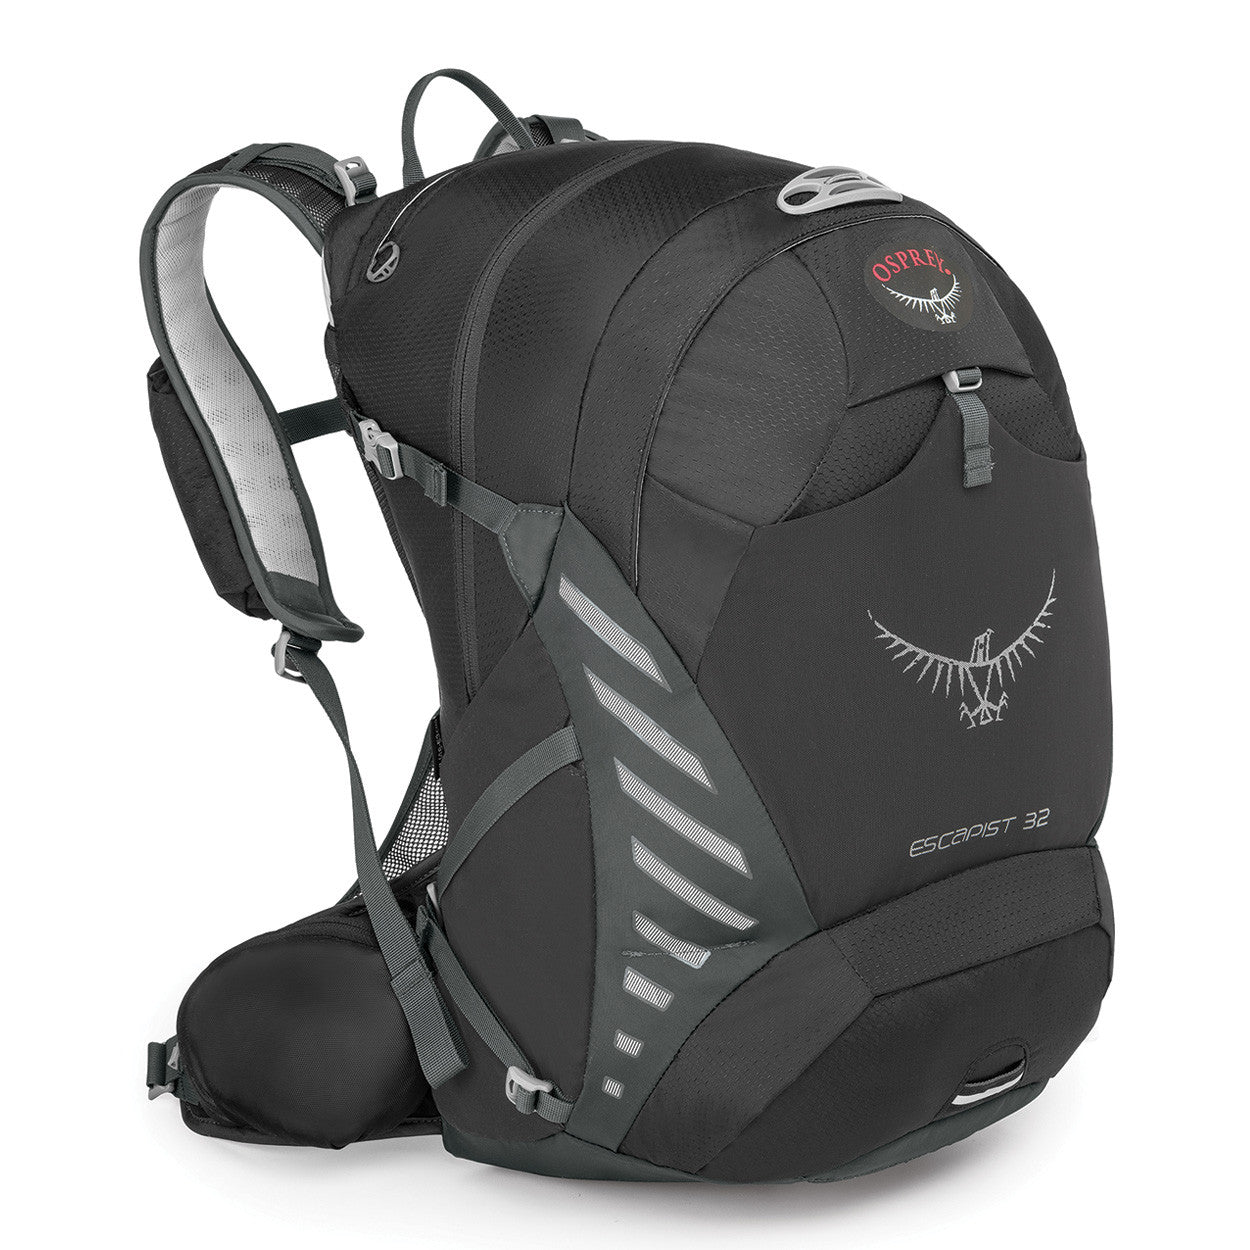 07ffa31bf1 Osprey Escapist 32 - multi-day backpack - Ground Effect